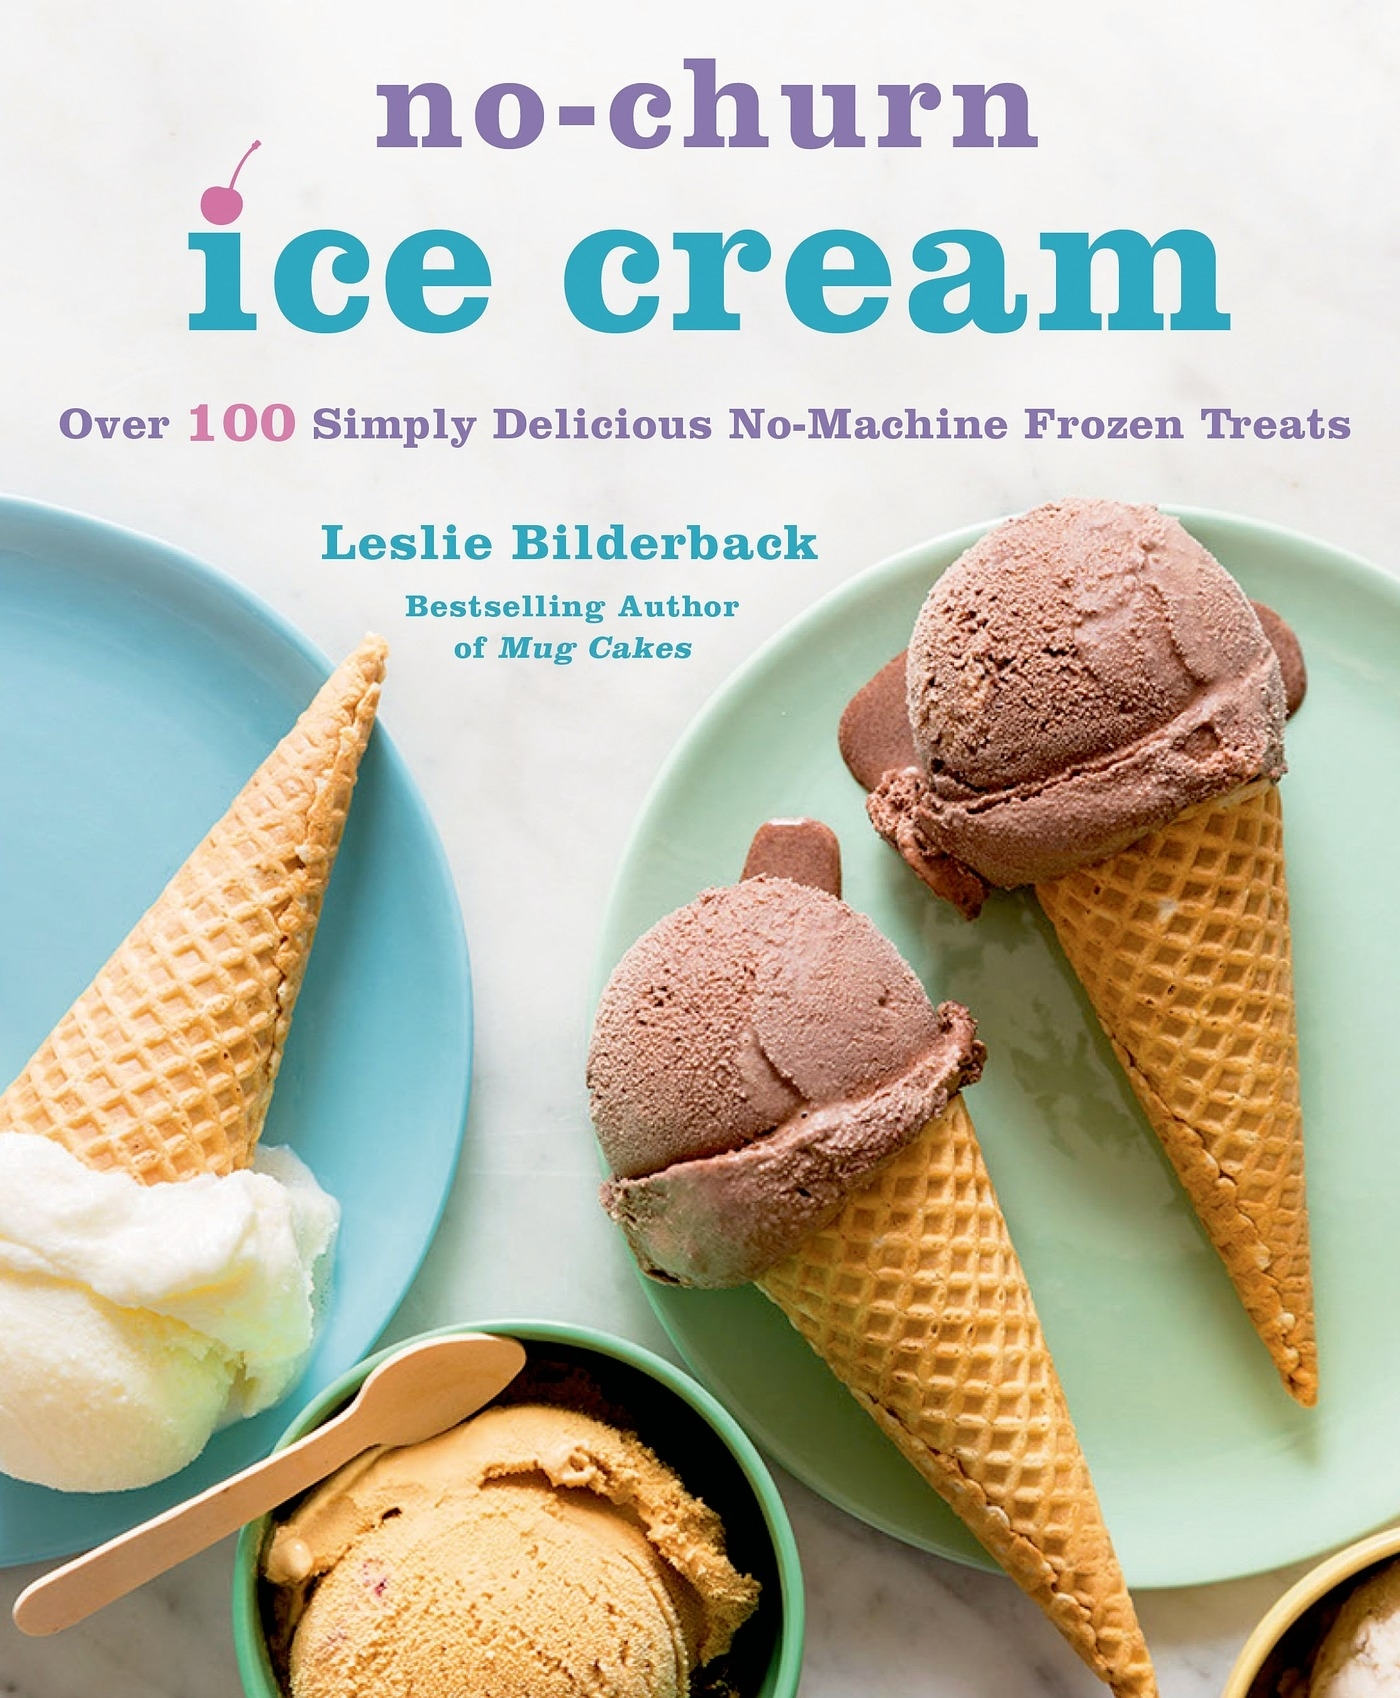 BOOK REVIEW: 'No-Churn Ice Cream' by Leslie Bilderback—5 Stars - We ...